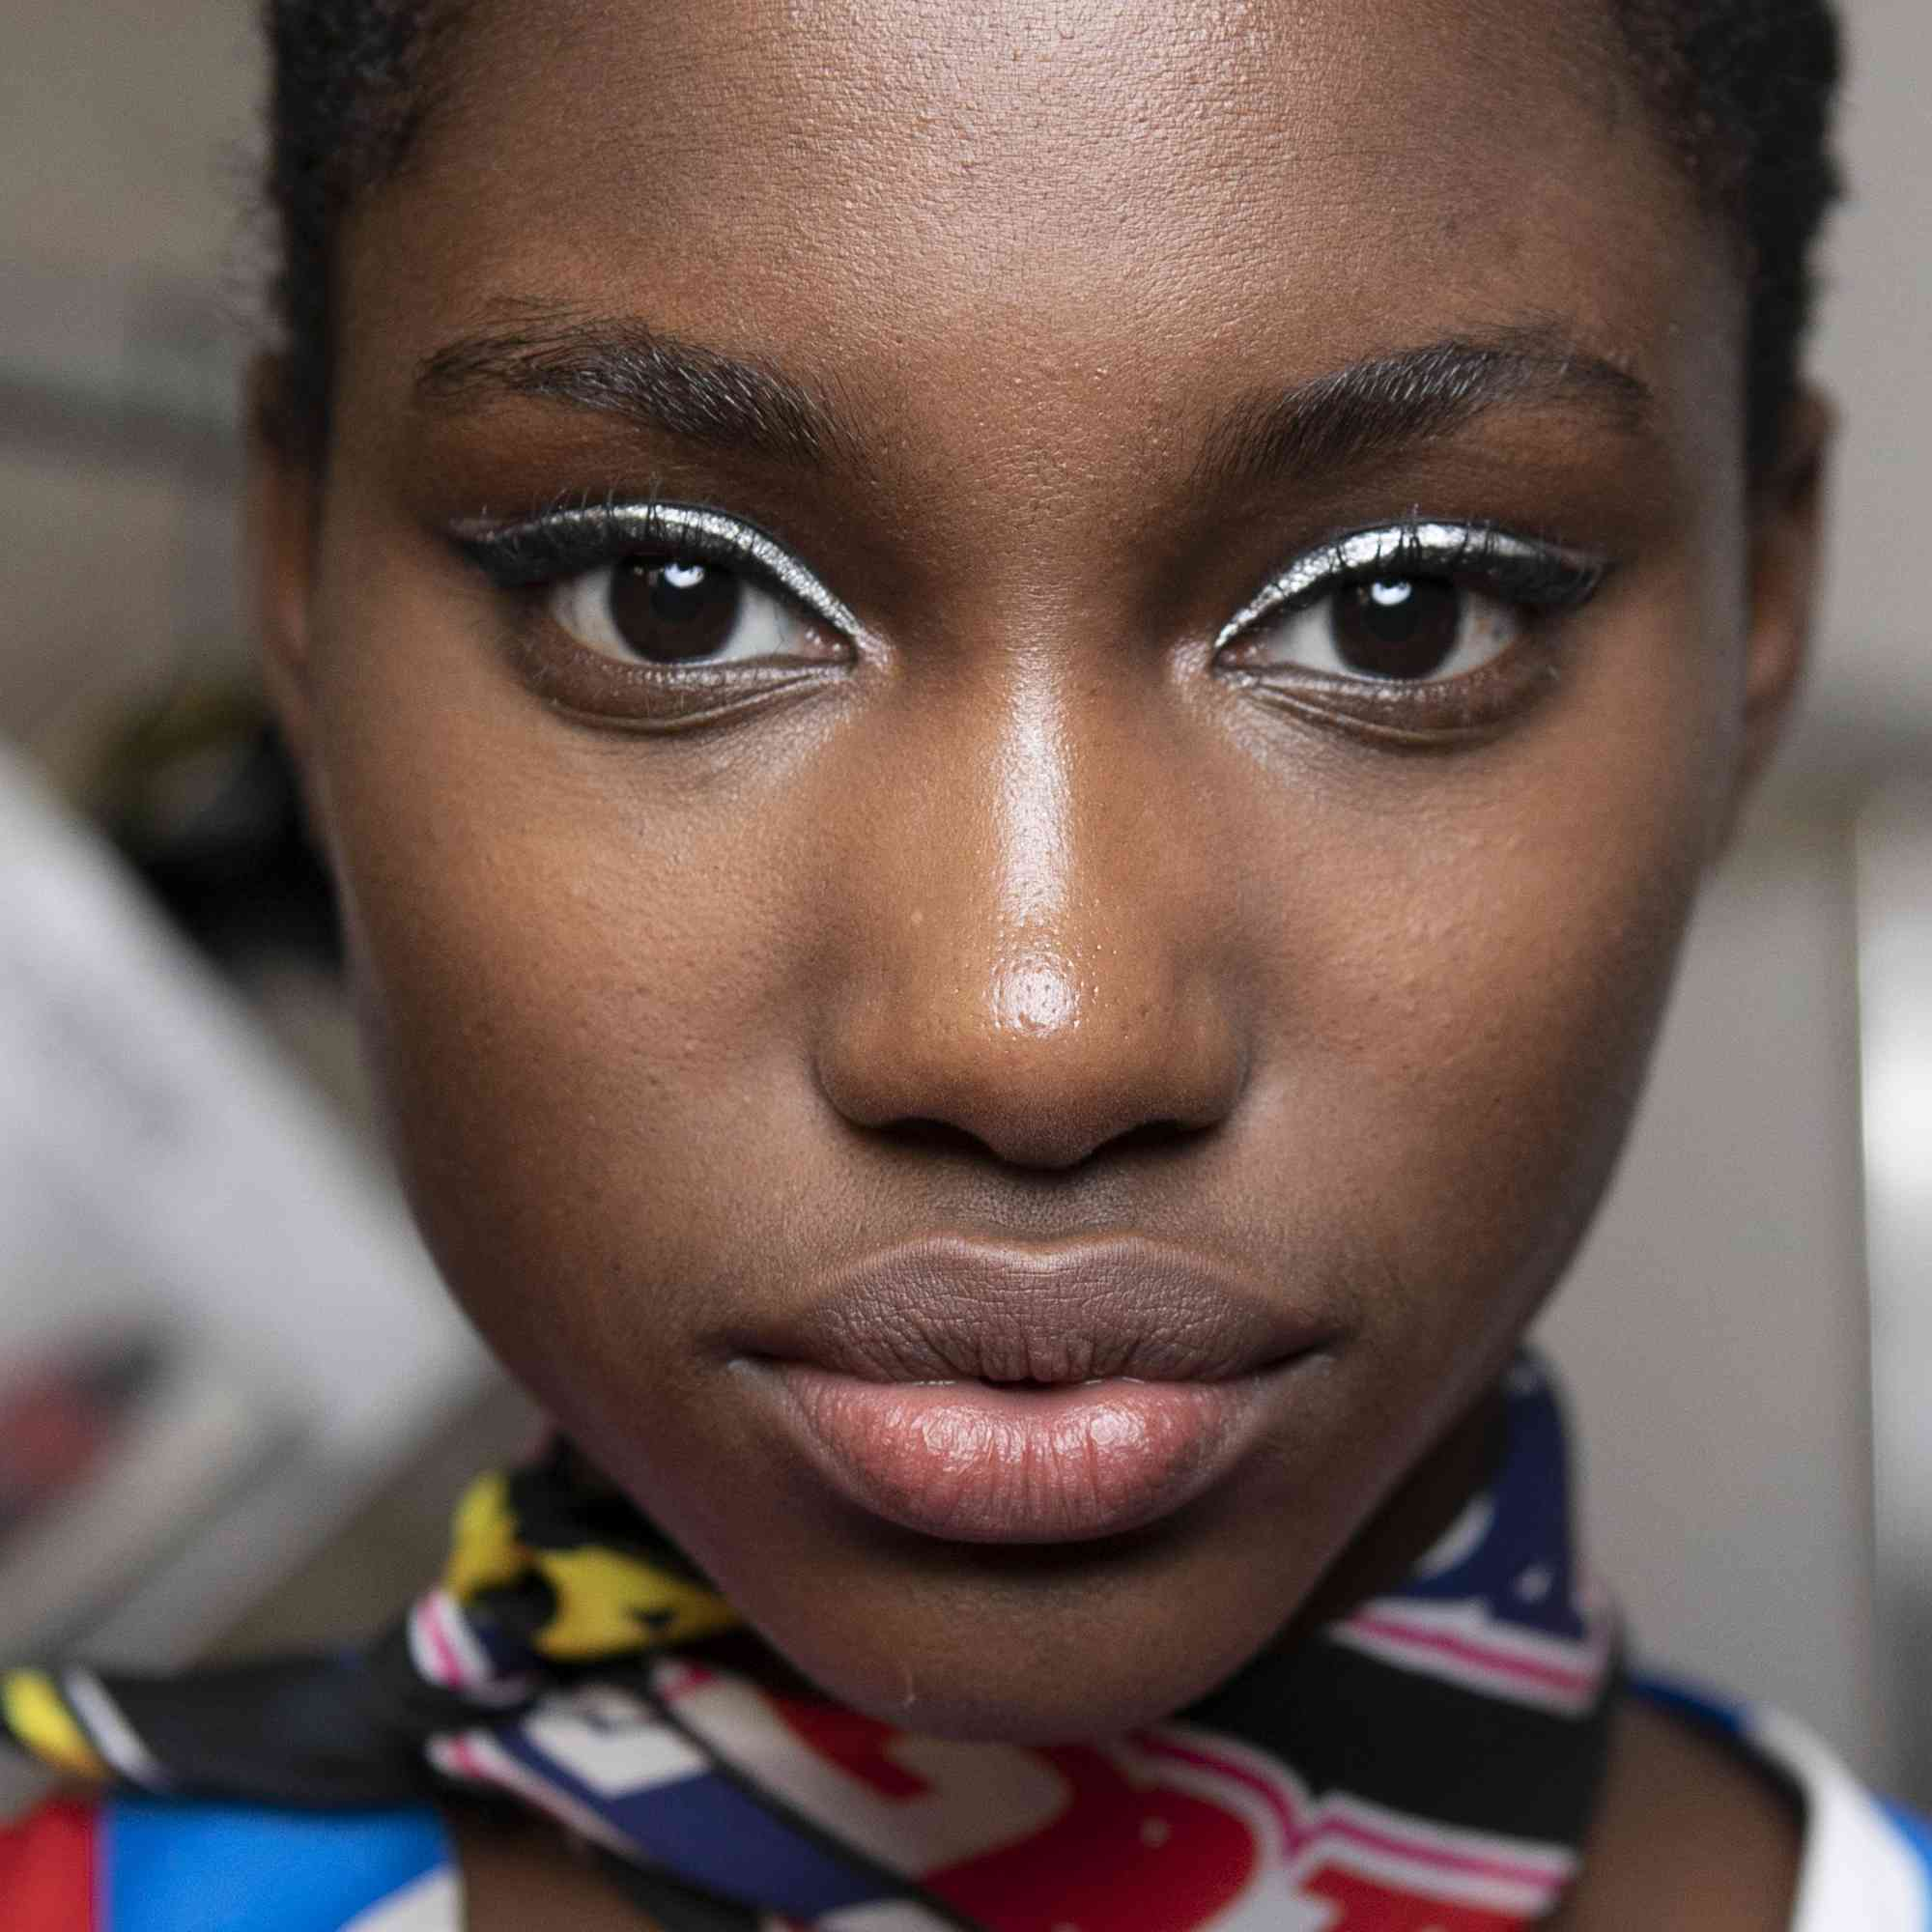 model backstage at NYFW with blue eyeliner and long lashes